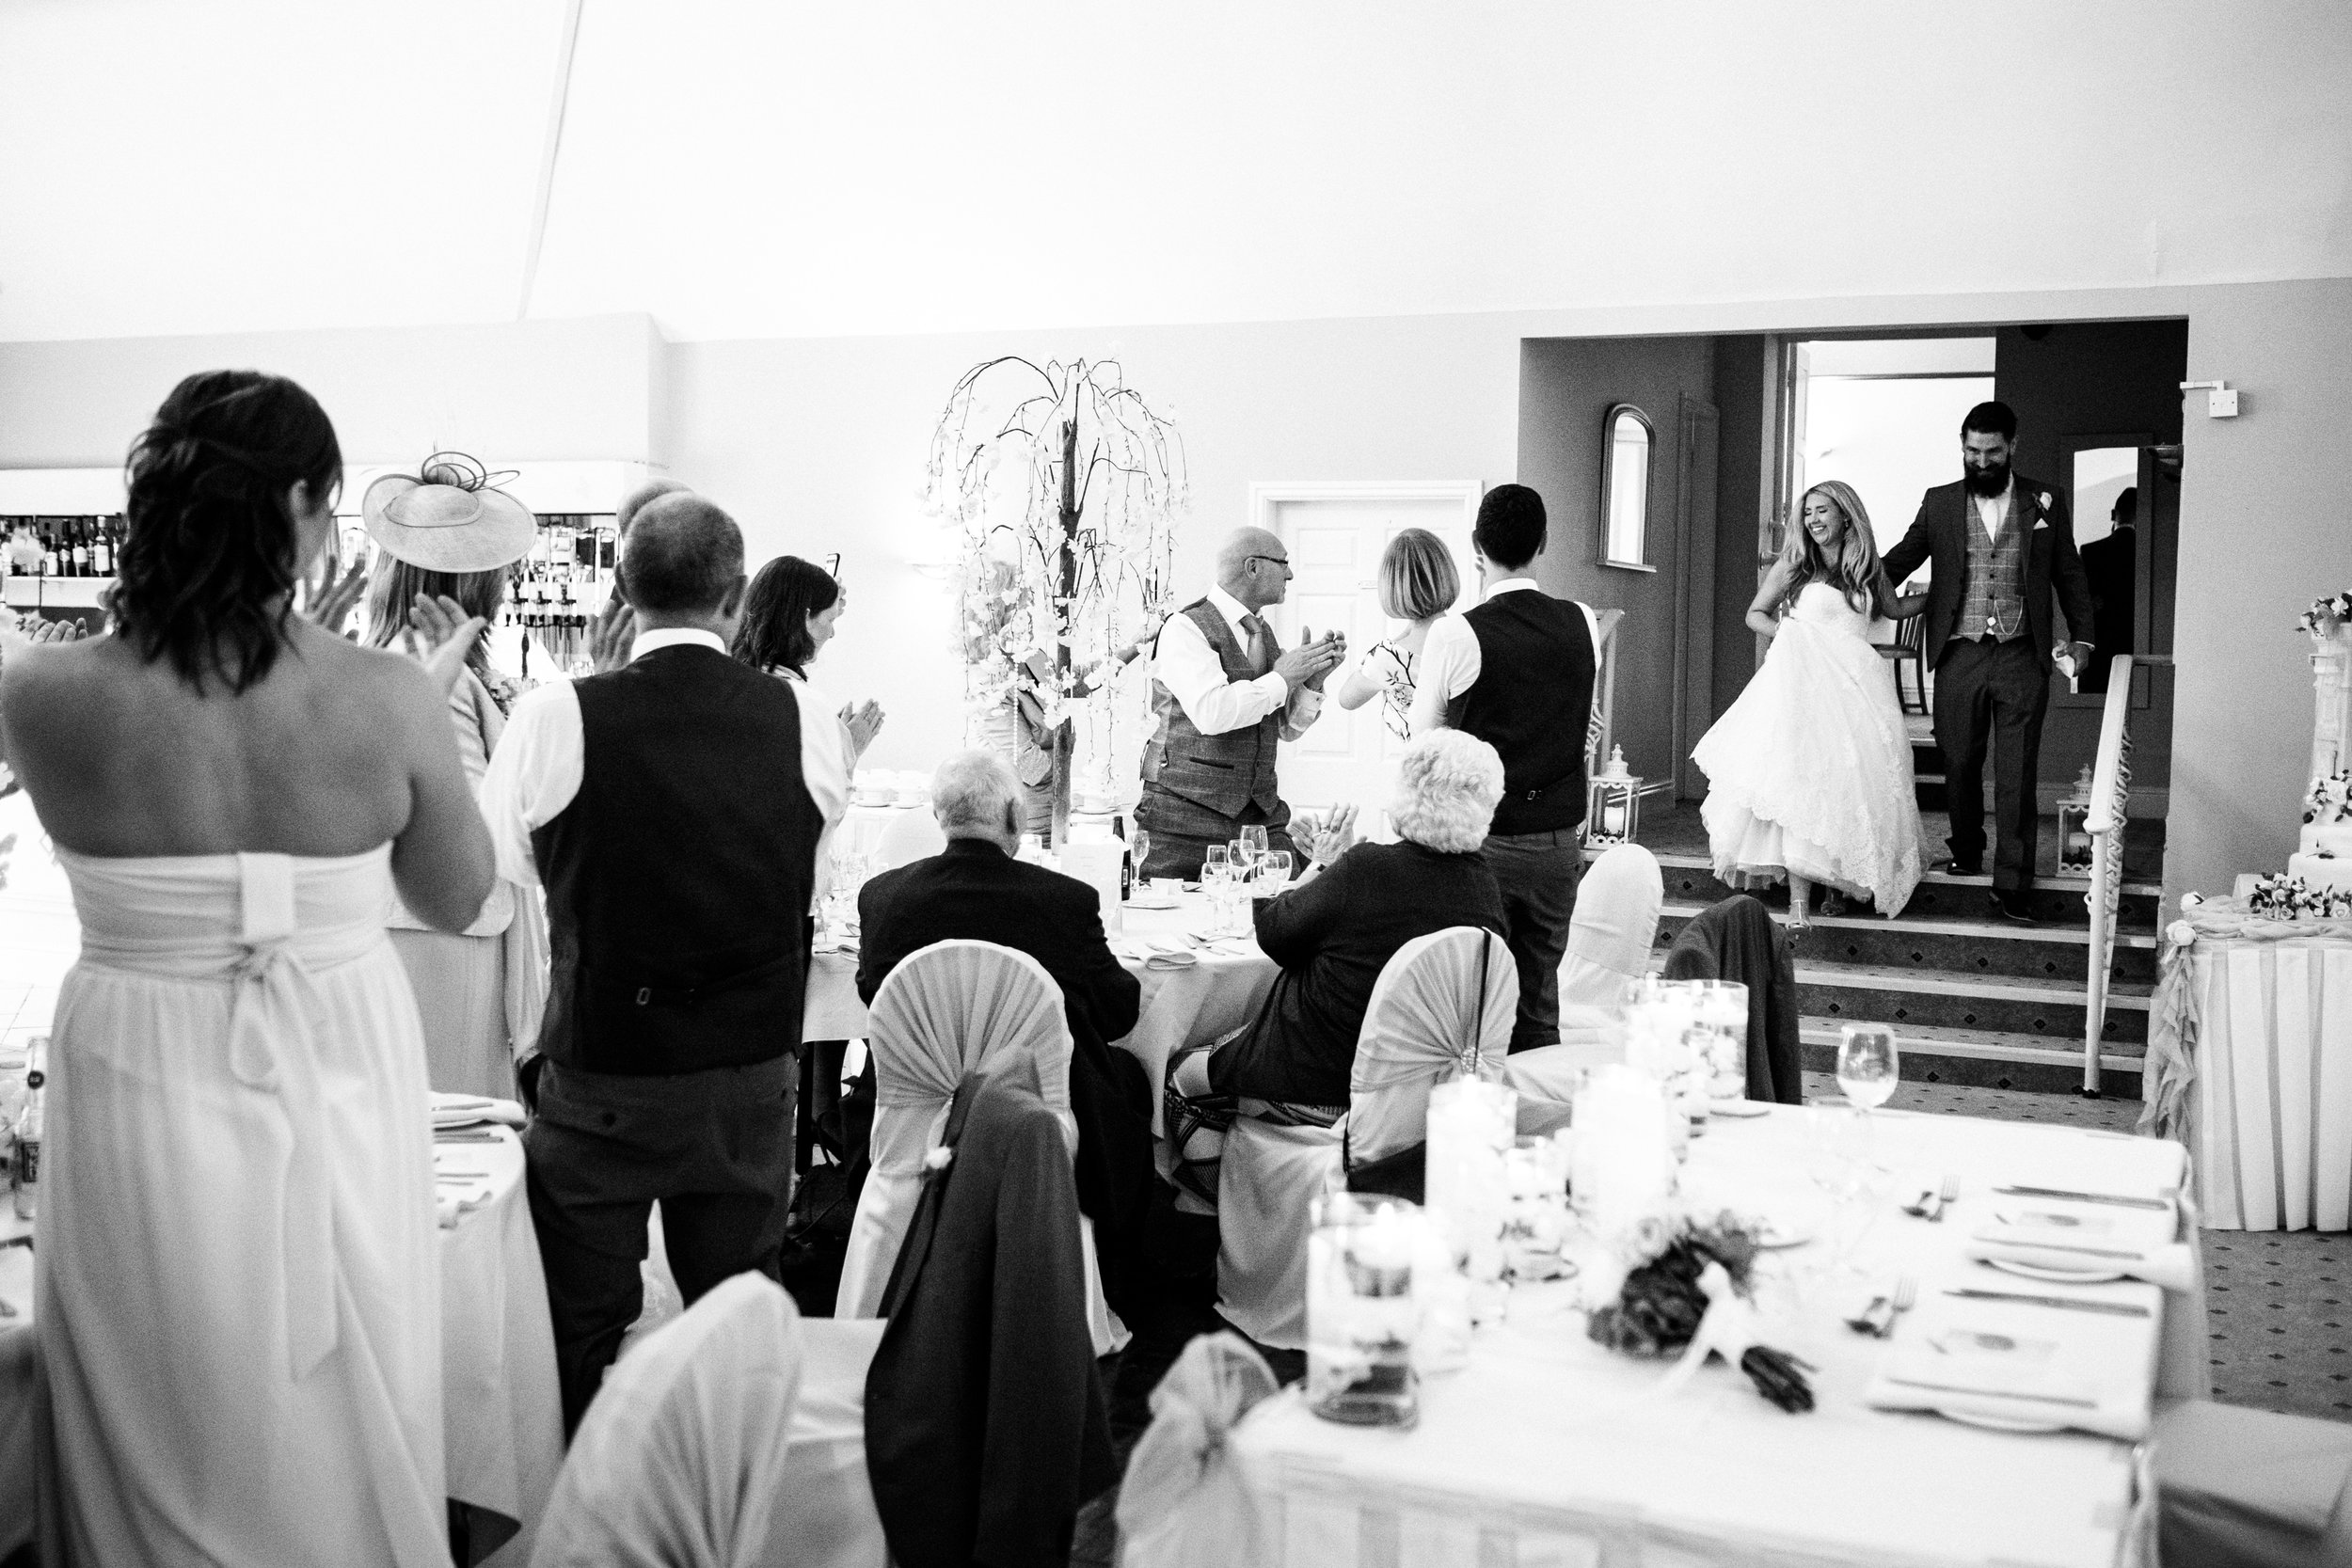 Summer Staffordshire Wedding Photography at The Manor, Cheadle - Jenny Harper-51.jpg